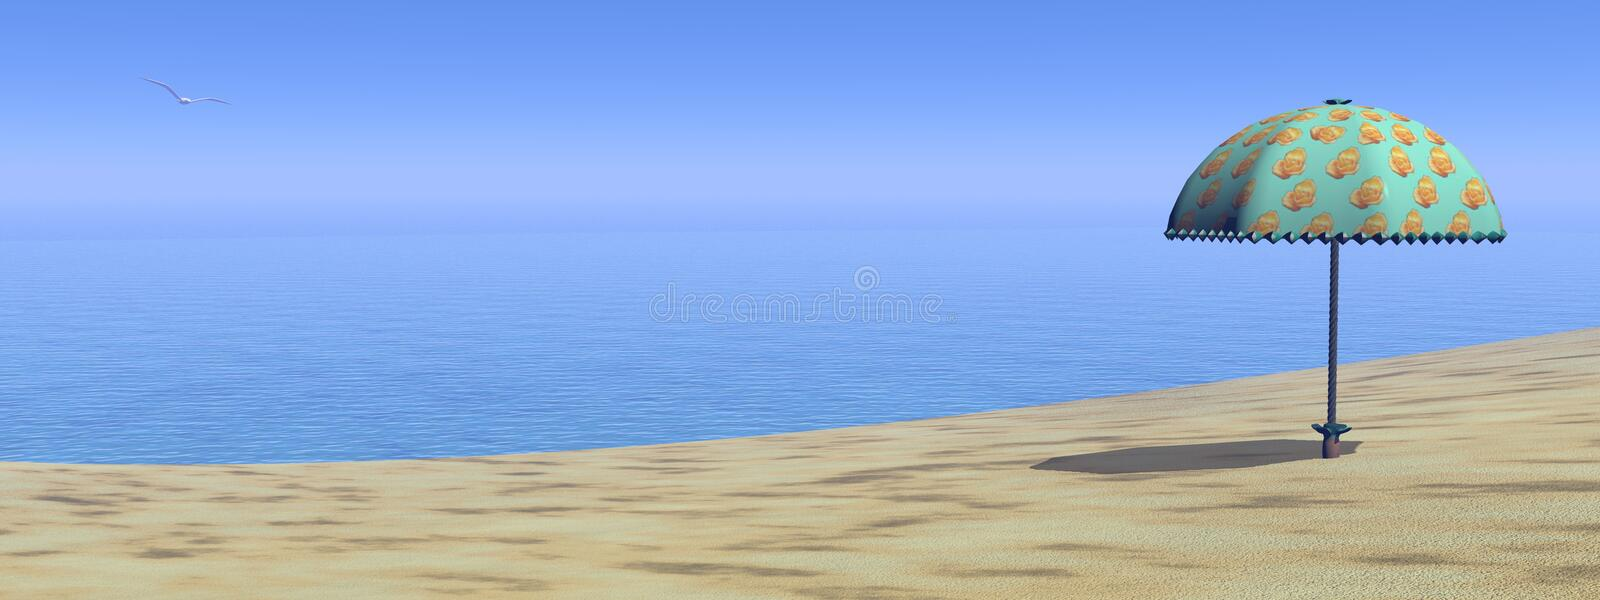 Plage - 3D rendent illustration stock